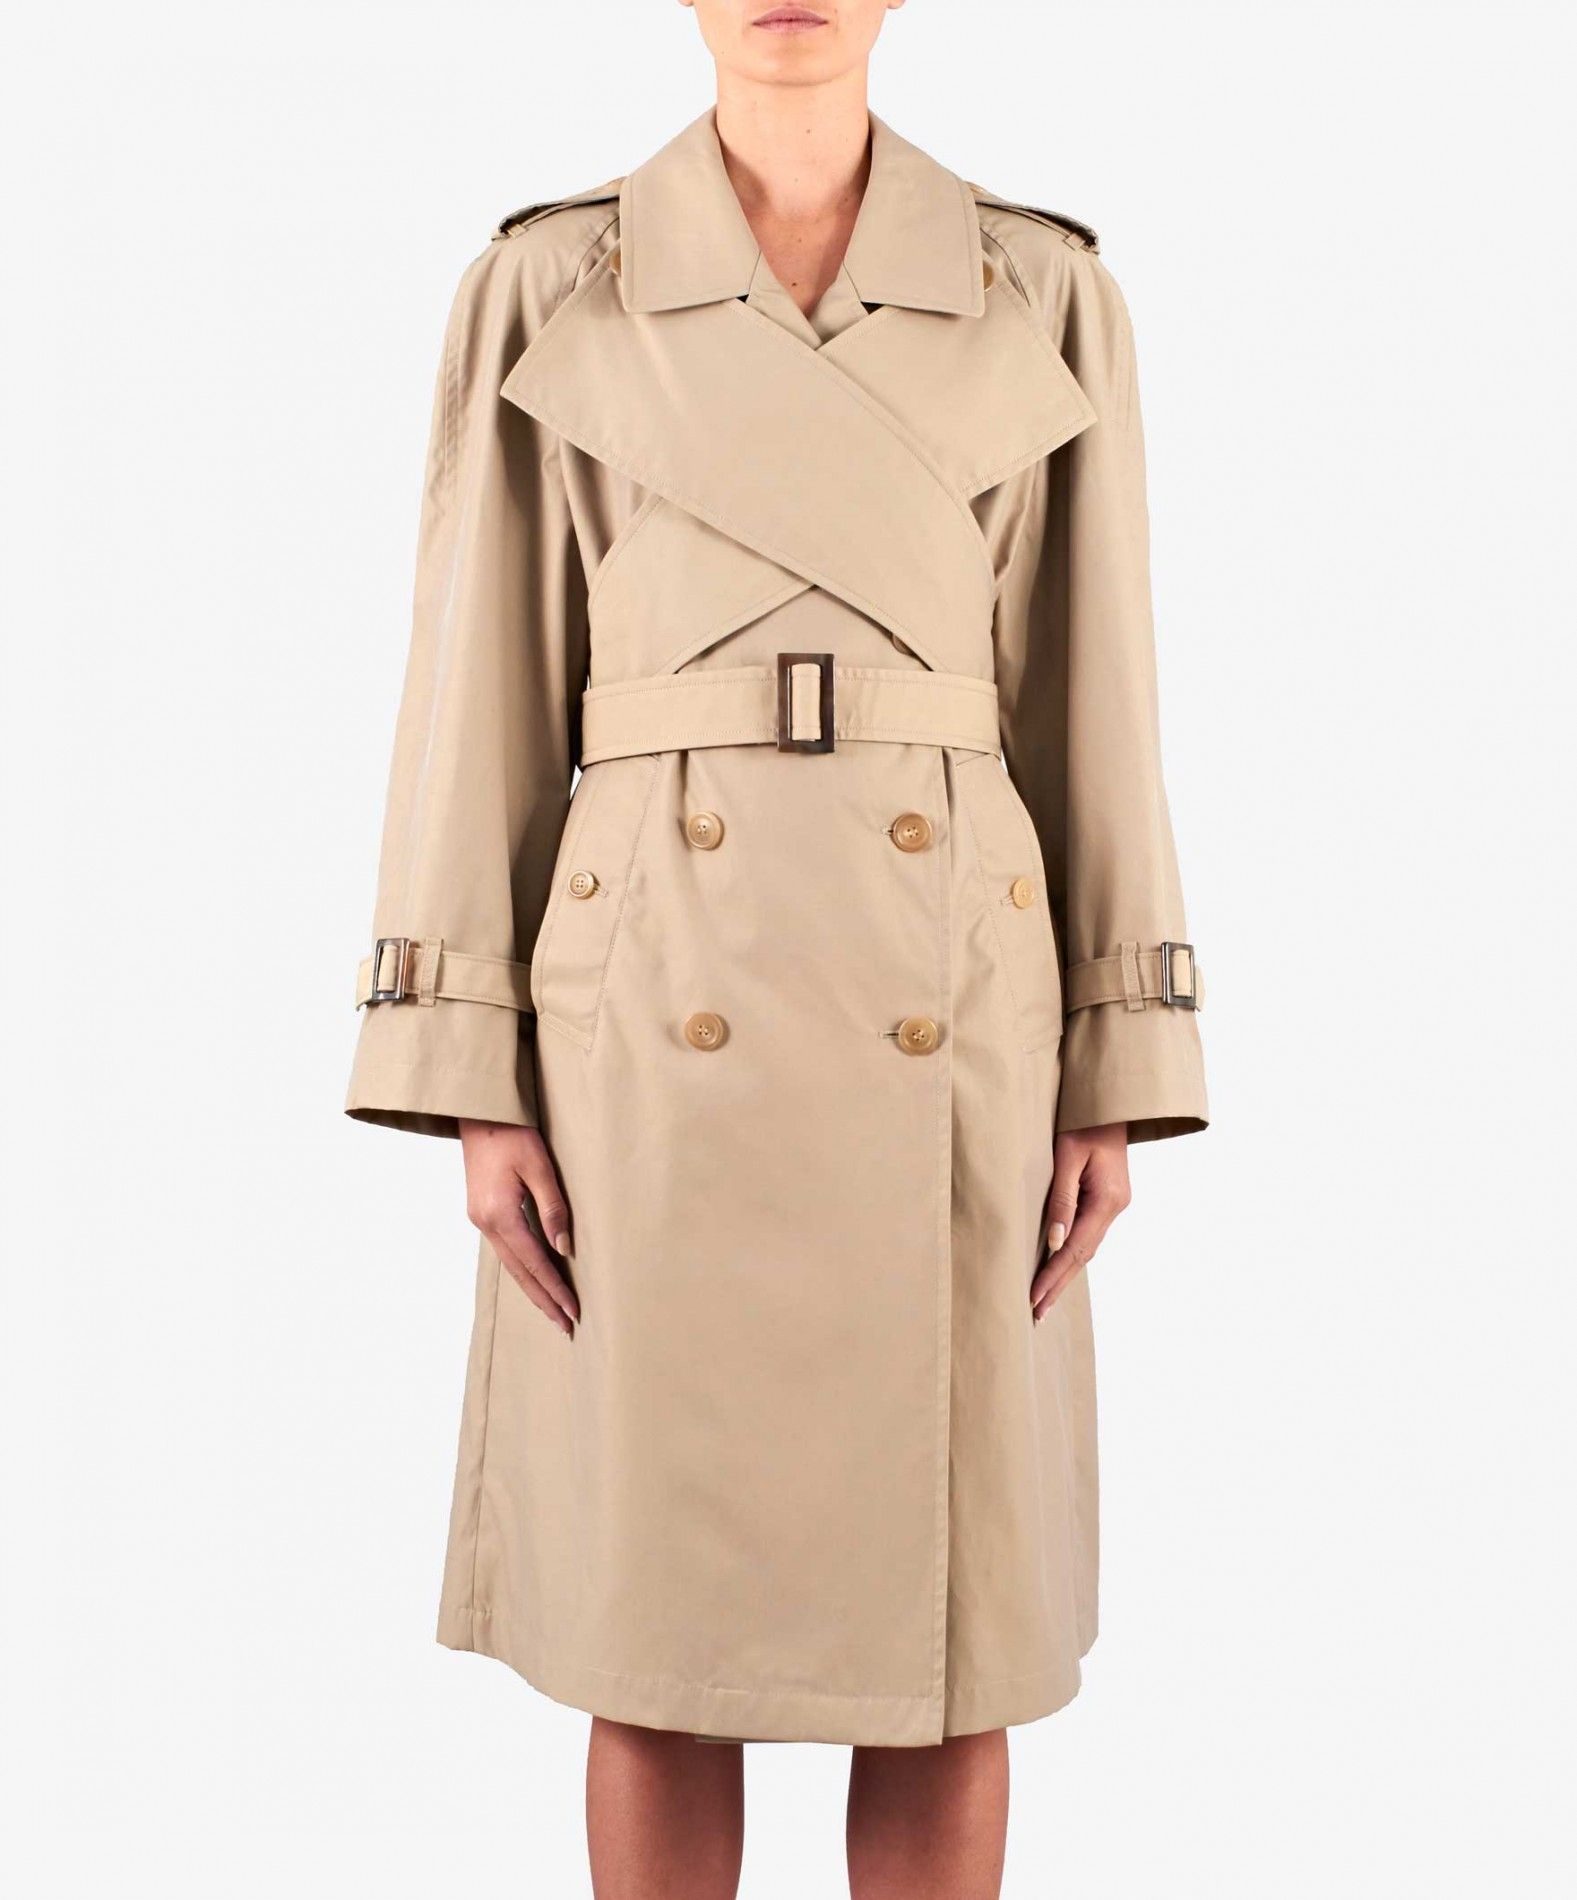 J.W. Anderson Double-Breasted Gabardine Trench Coat ($787